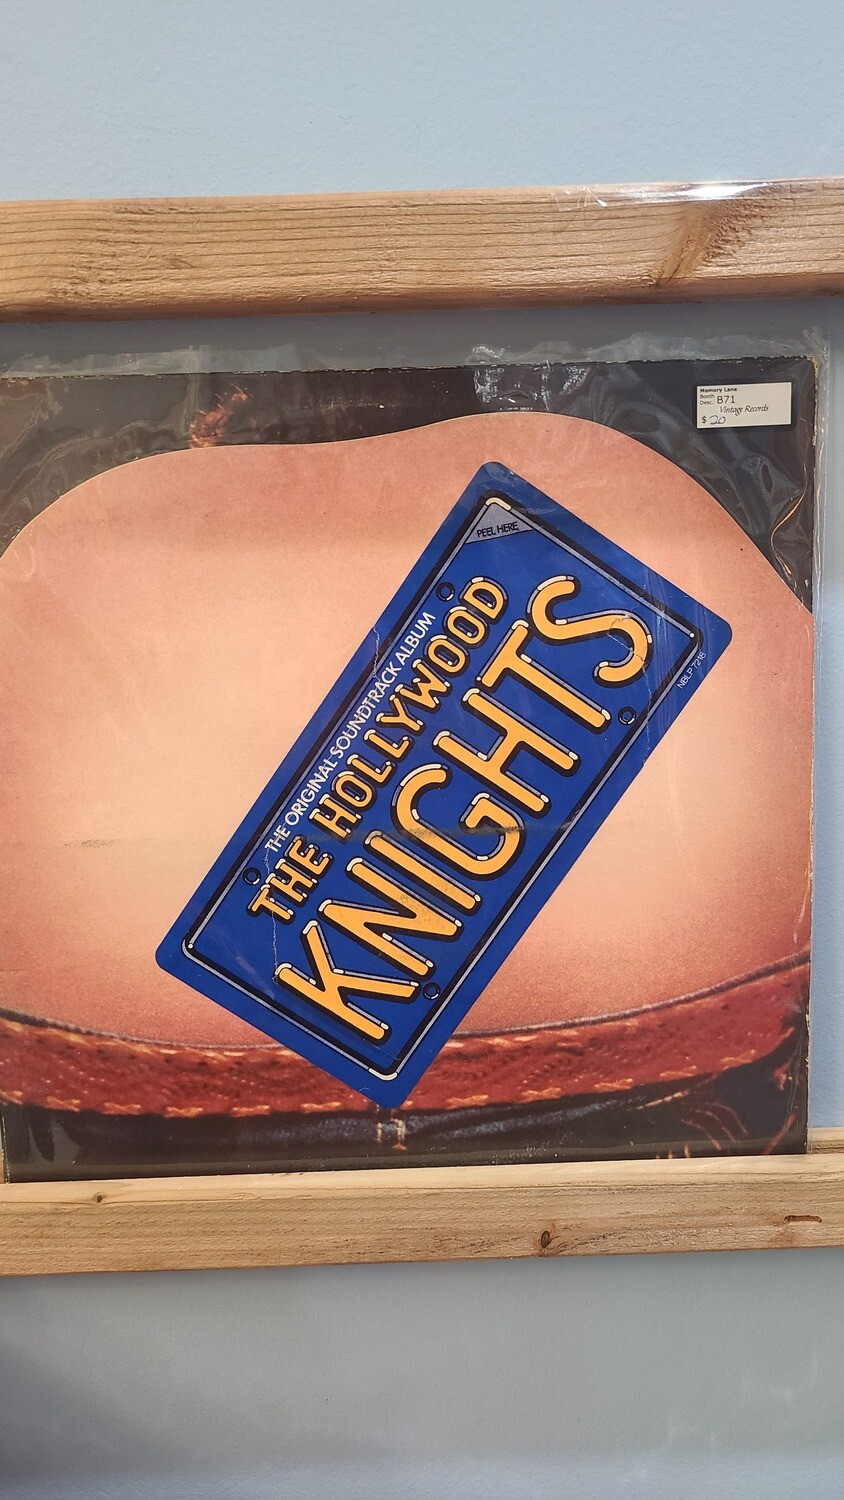 The Hollywood Knights Soundtrack